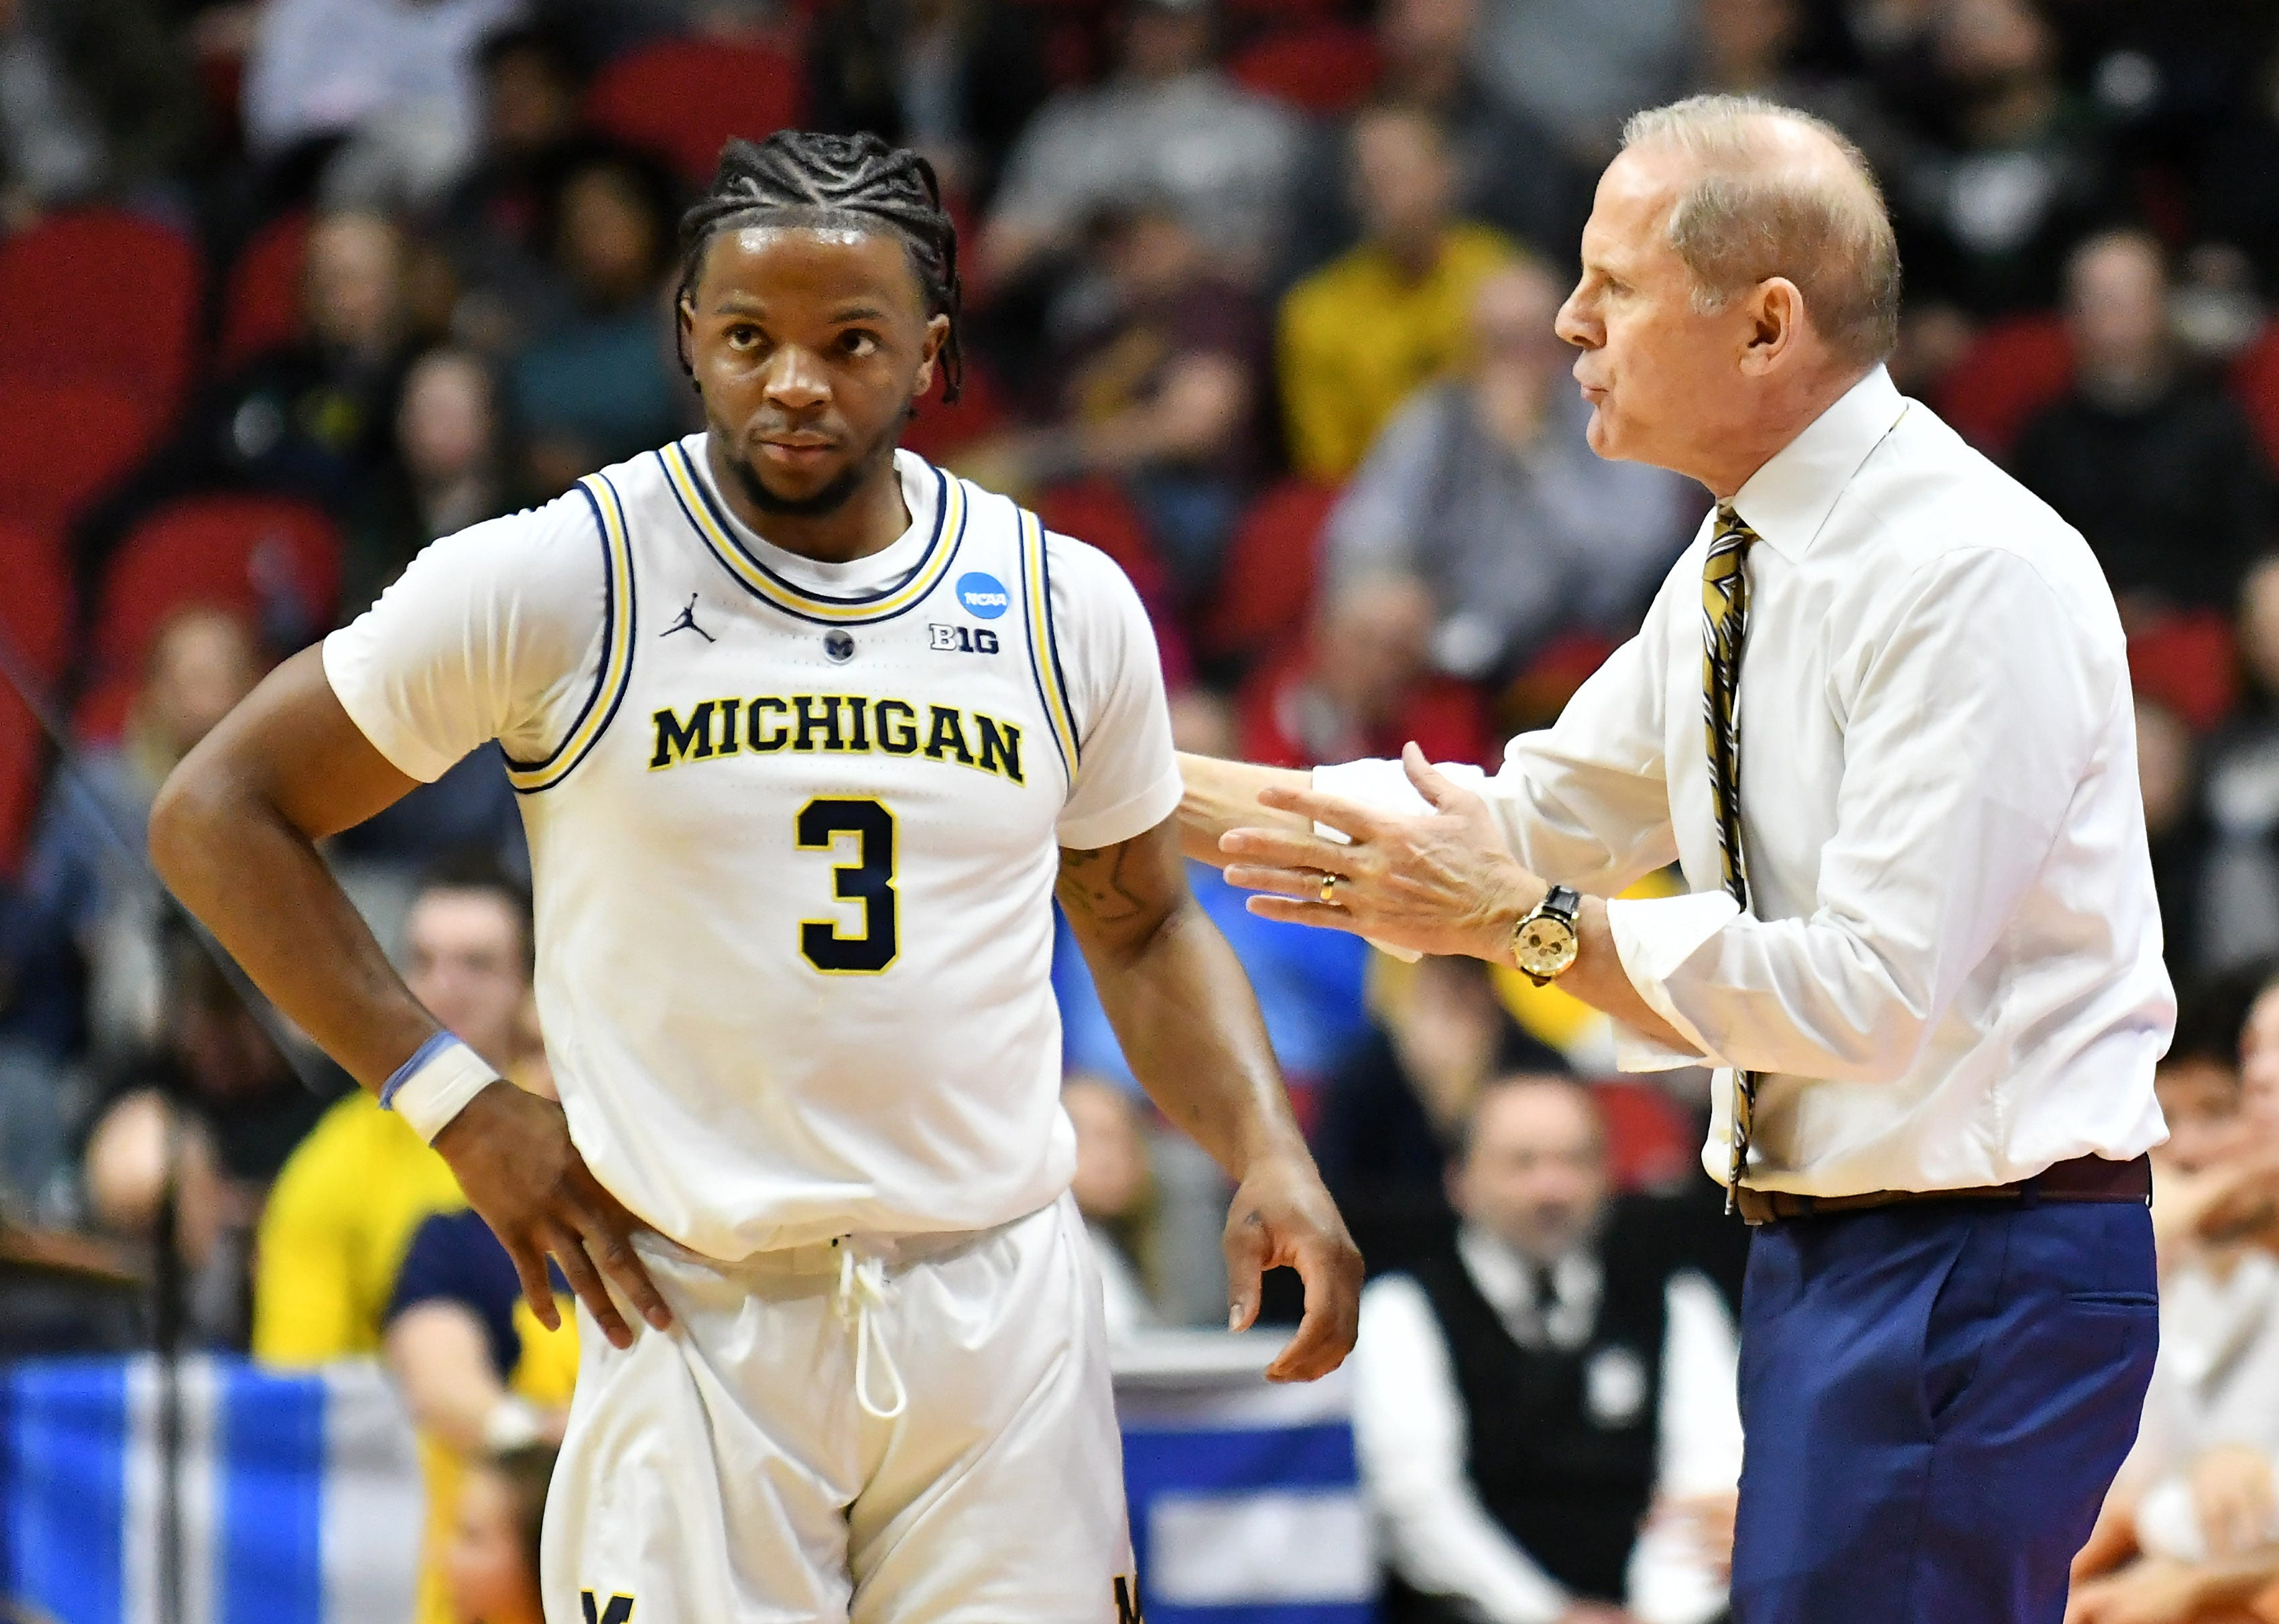 Michigan head coach John Beilein talks with Michigan guard Zavier Simpson in the first half Thursday.